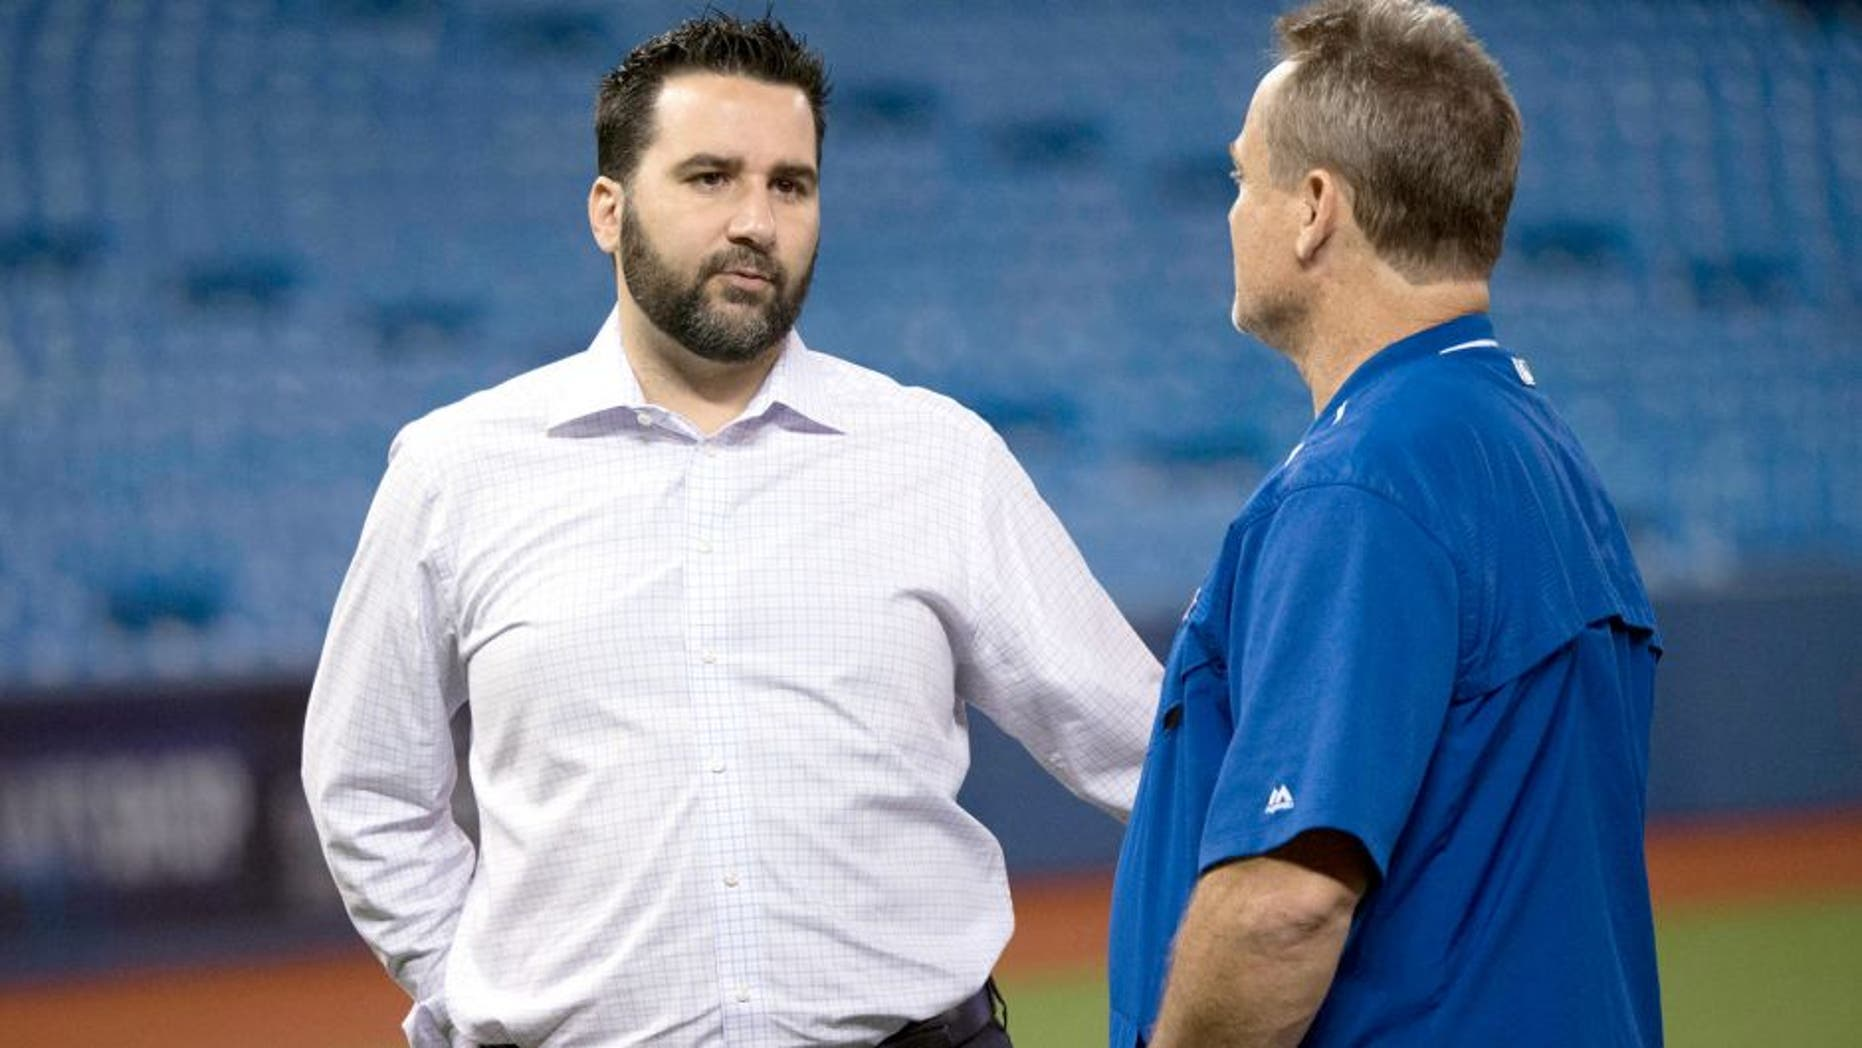 Aug 1, 2015; Toronto, Ontario, CAN; Toronto Blue Jays general manager Alex Anthopoulos talks with Toronto Blue Jays manager John Gibbons (right) during batting practice before a game against the Kansas City Royals at Rogers Centre. The Kansas City Royals won 7-6. Mandatory Credit: Nick Turchiaro-USA TODAY Sports